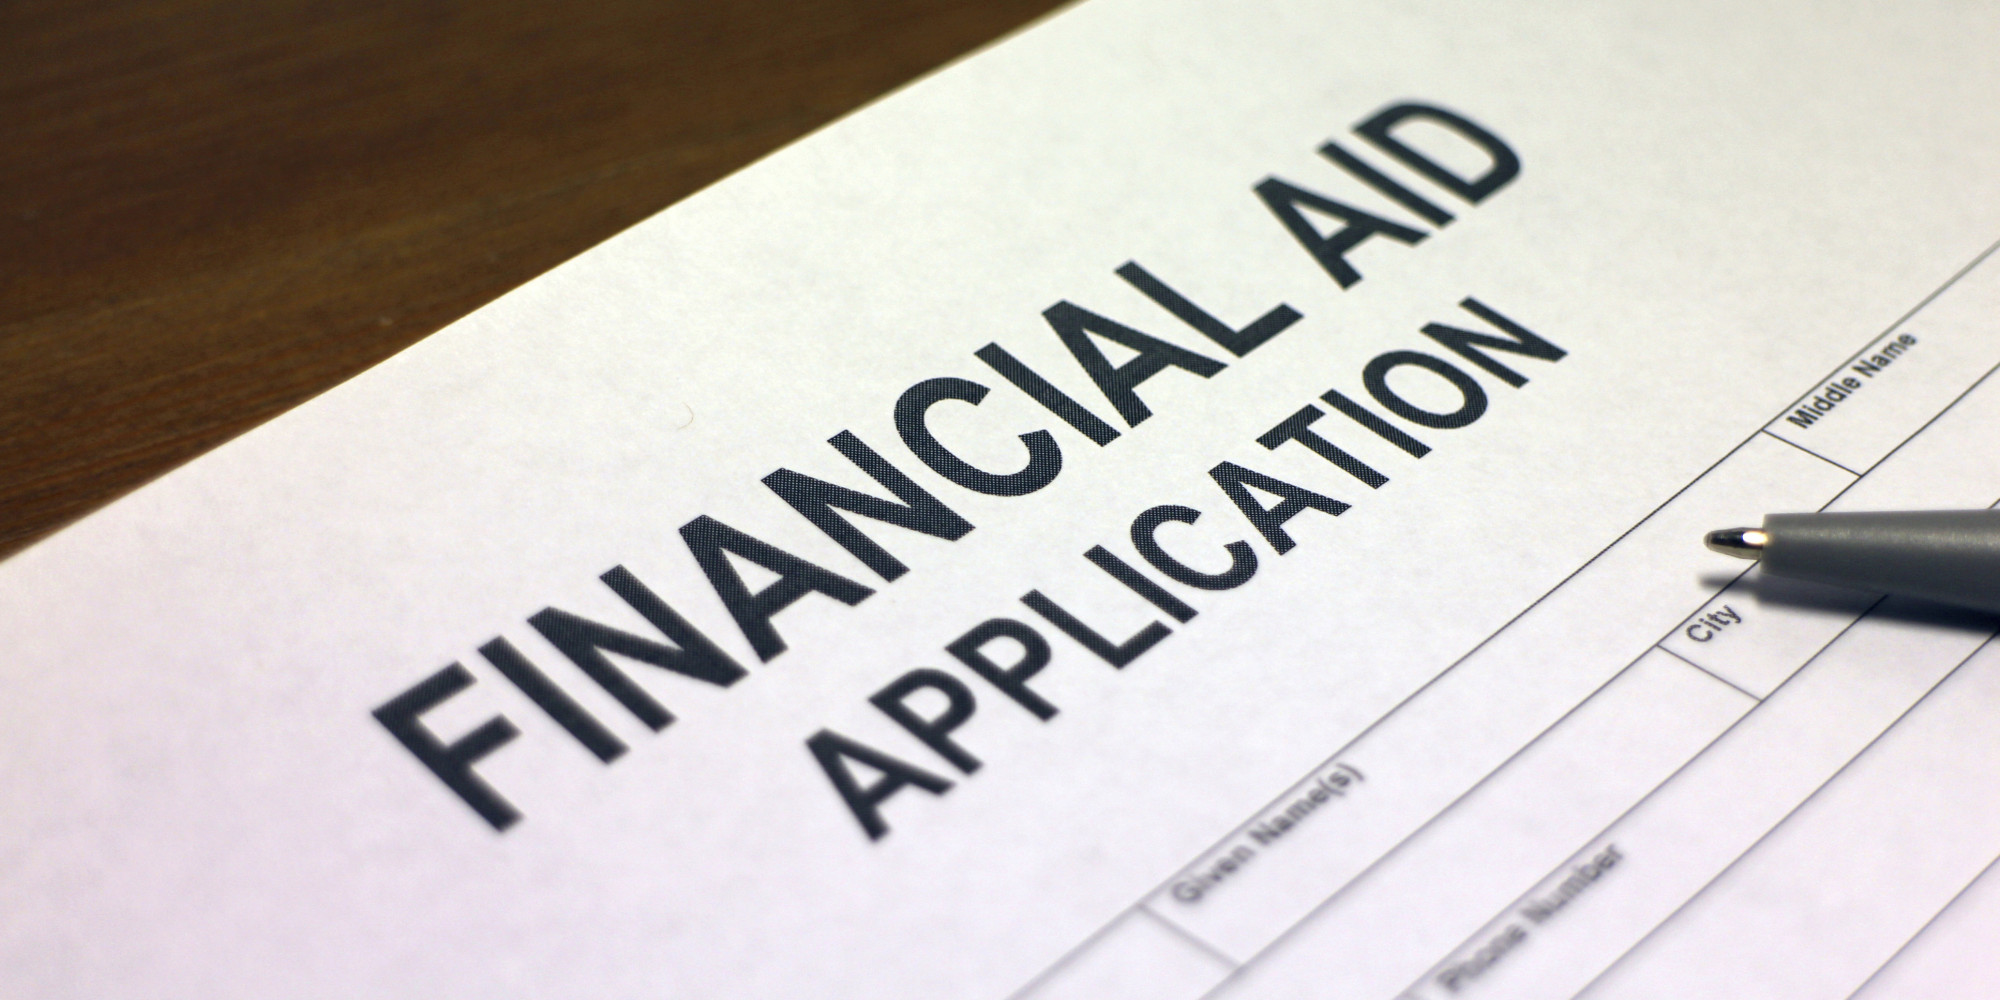 financial aid award letters: eschew obfuscation | huffpost